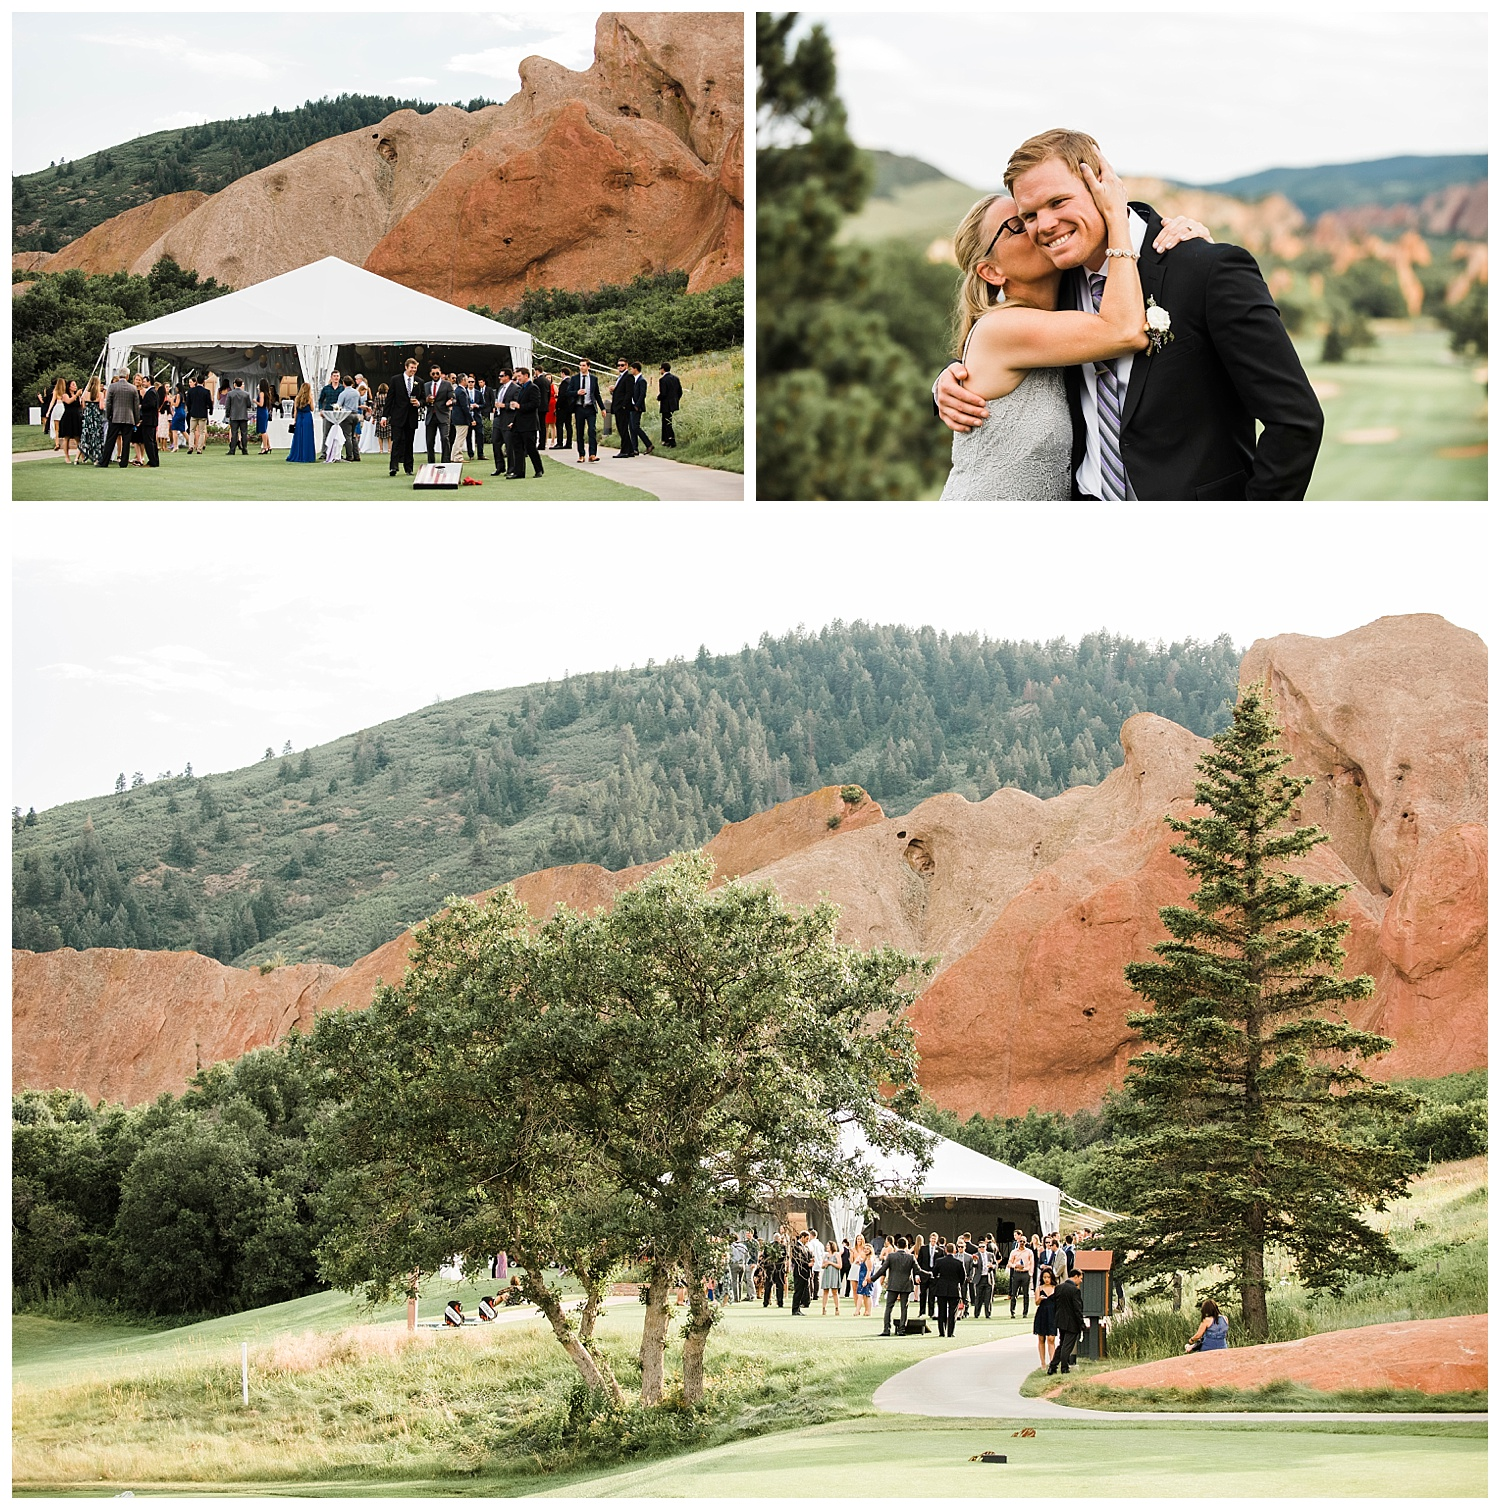 Arrowhead_Golf_Course_Wedding_Littleton_Colorado_Apollo_Fields_172.jpg